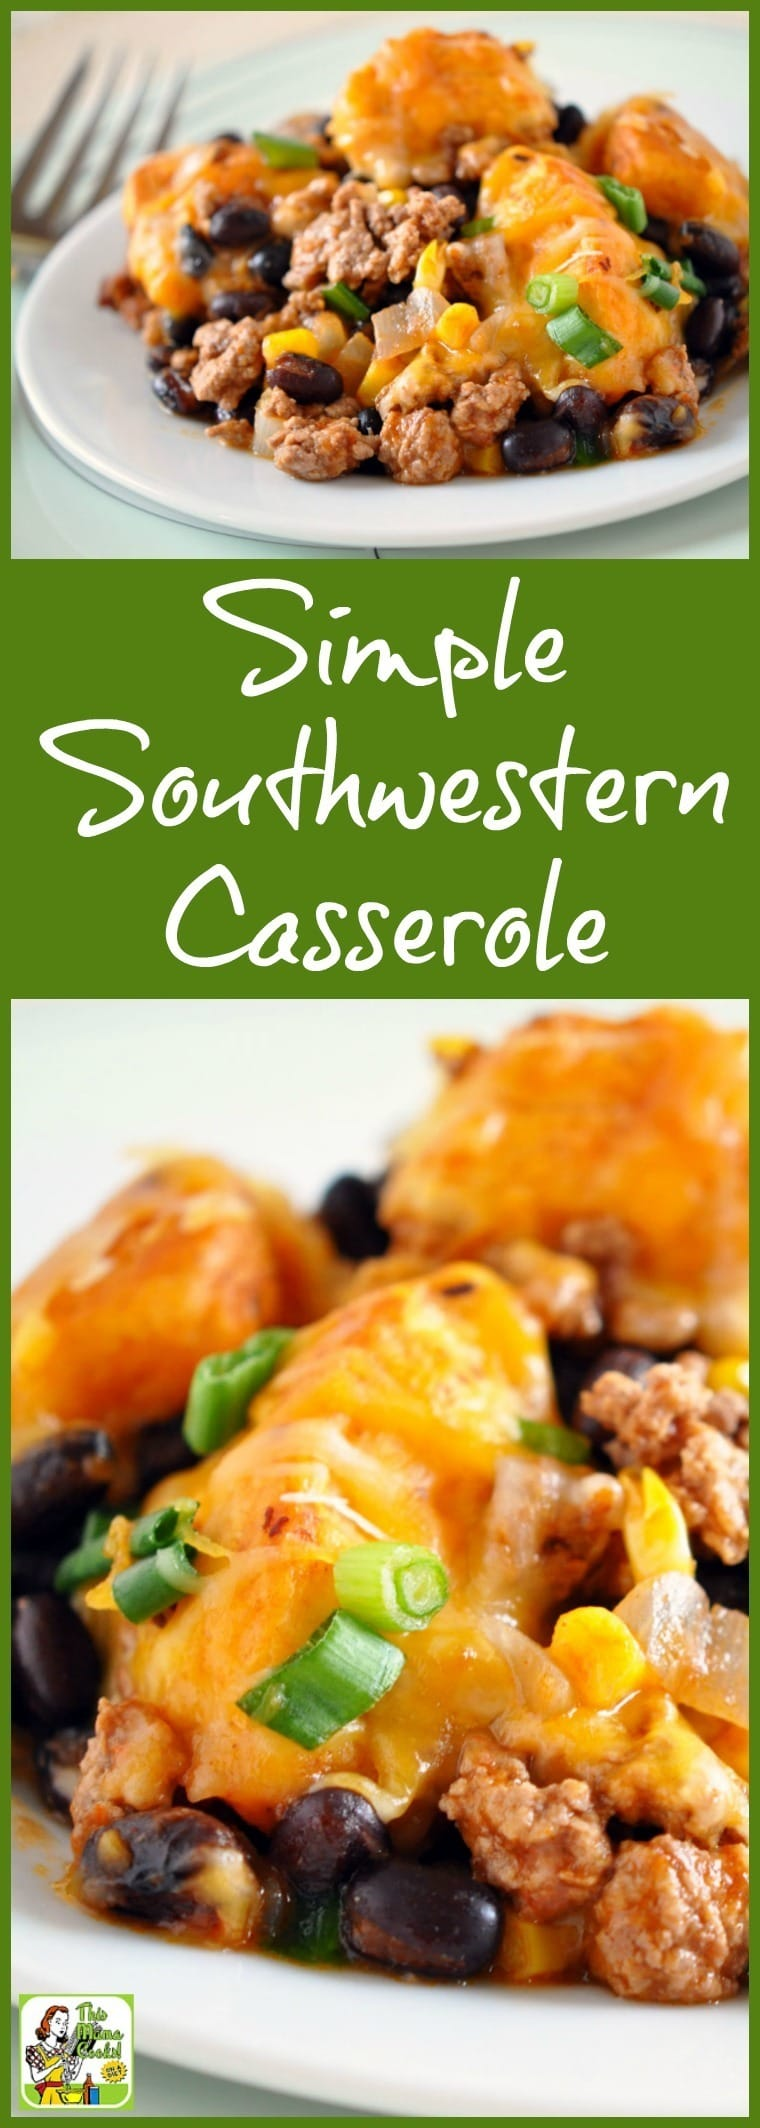 This Simple Southwestern Casserole recipe can be made in 30 minutes or less. It uses pantry and freezer friendly ingredients. #recipes #easy #recipeoftheday #healthyrecipes #glutenfree #easyrecipes #casserole #dinner #easydinner #dinnerrecipes